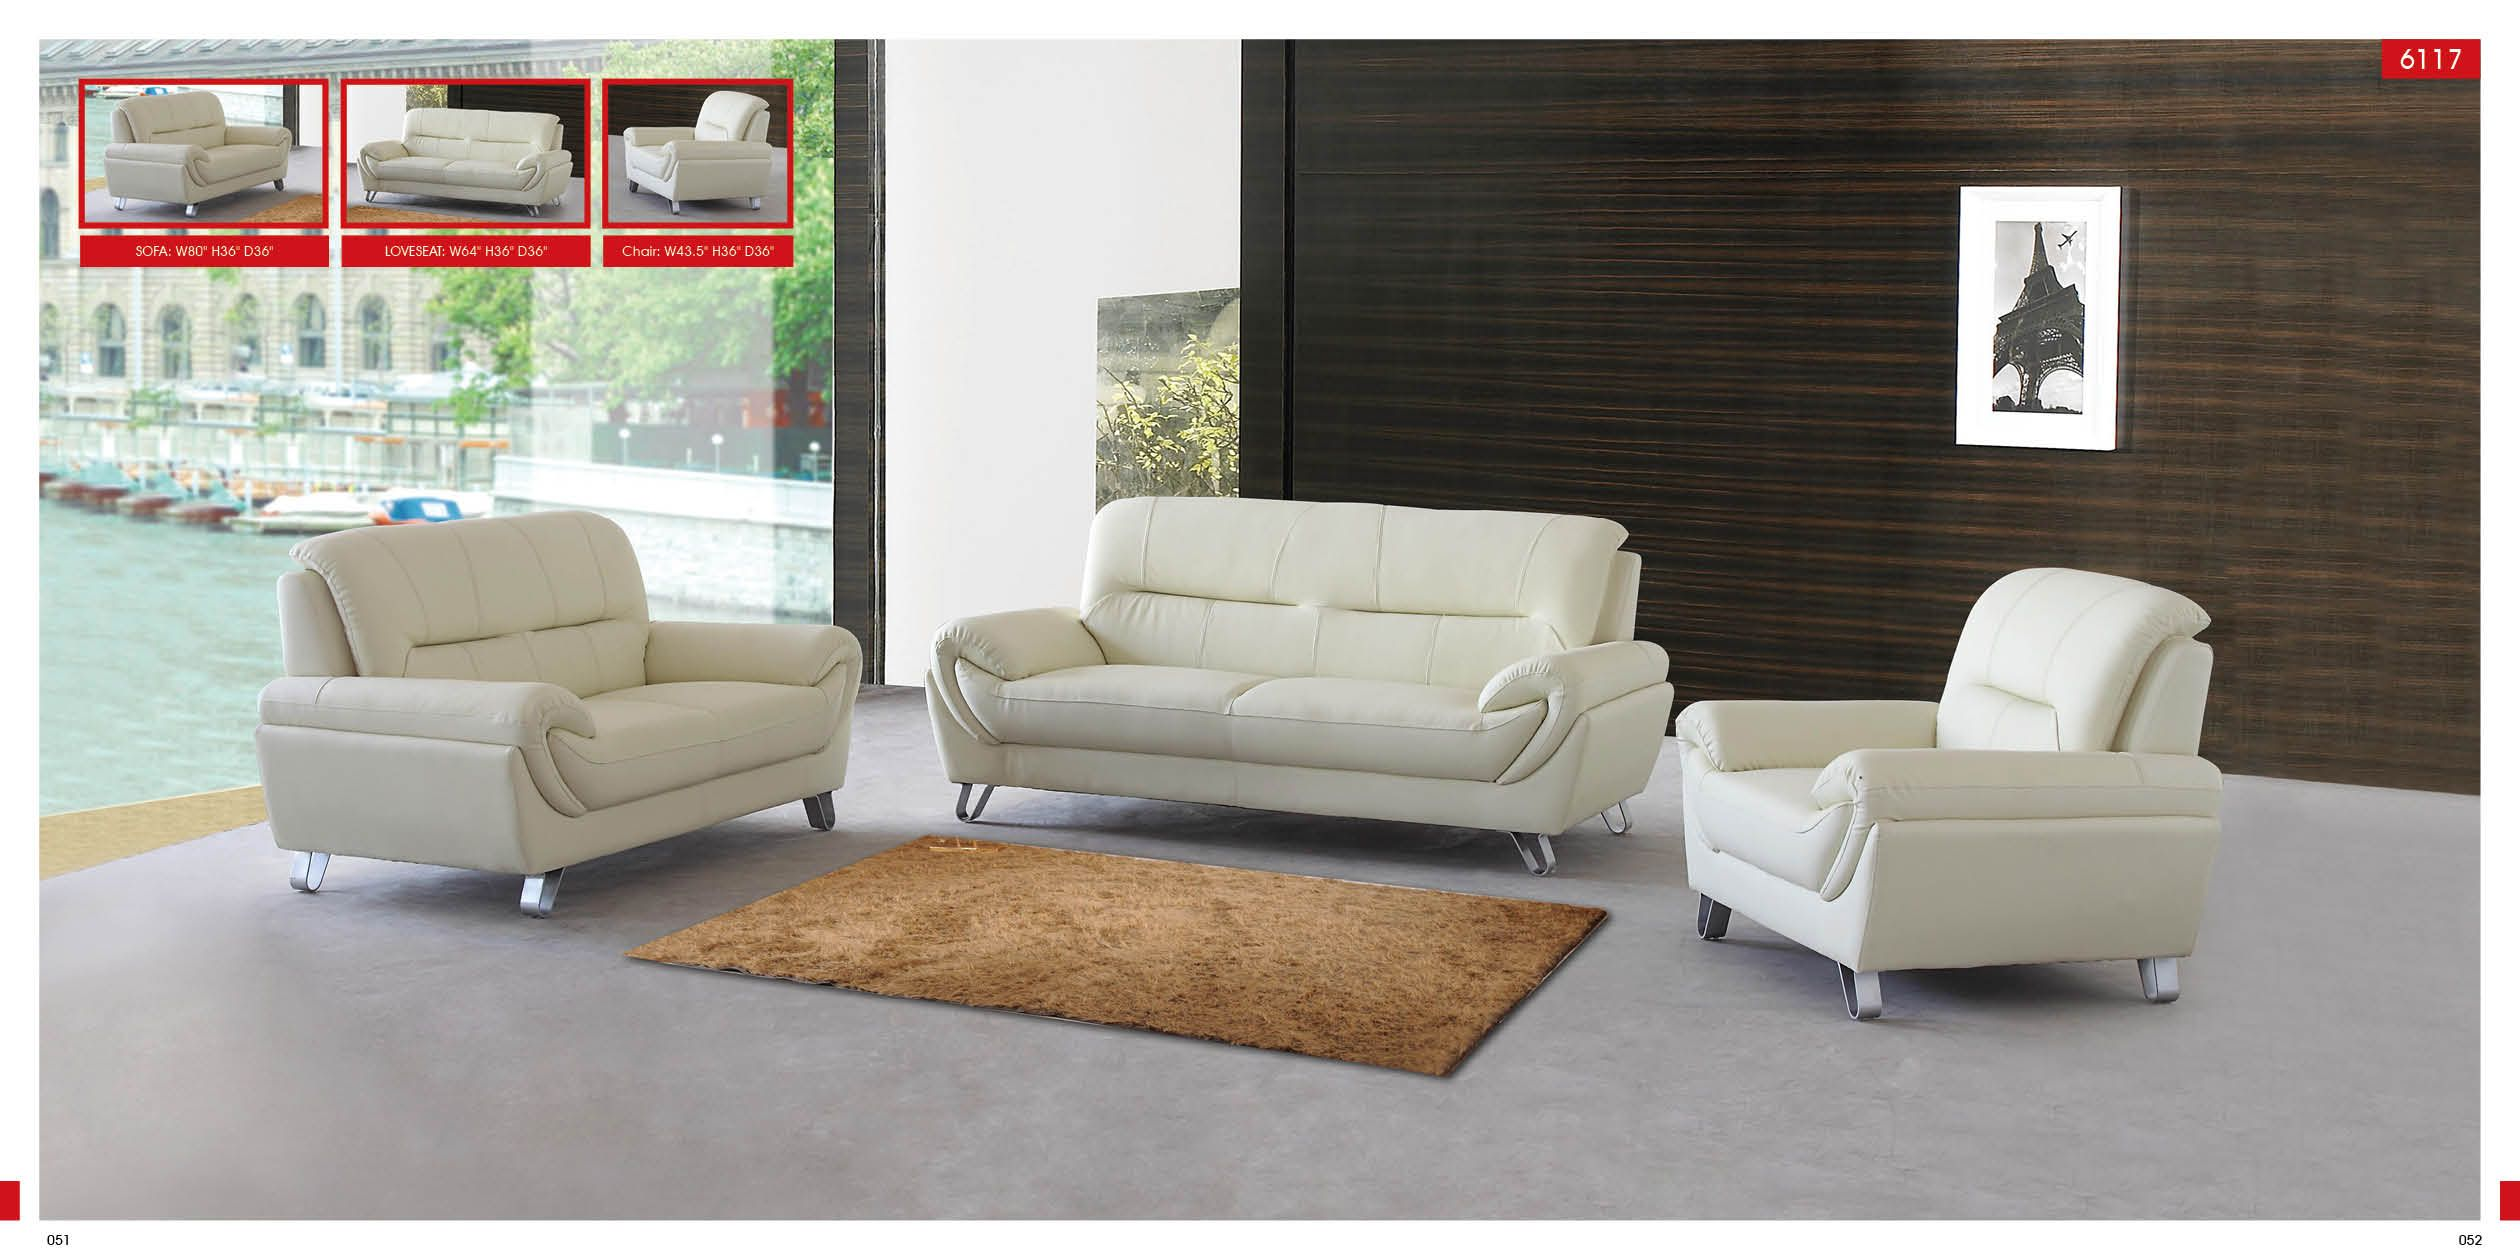 Living Room Furnishings And Design Entrancing Modern Off White Leather 3 Pc Sofa Set  Leather Sofa Sets Inspiration Design